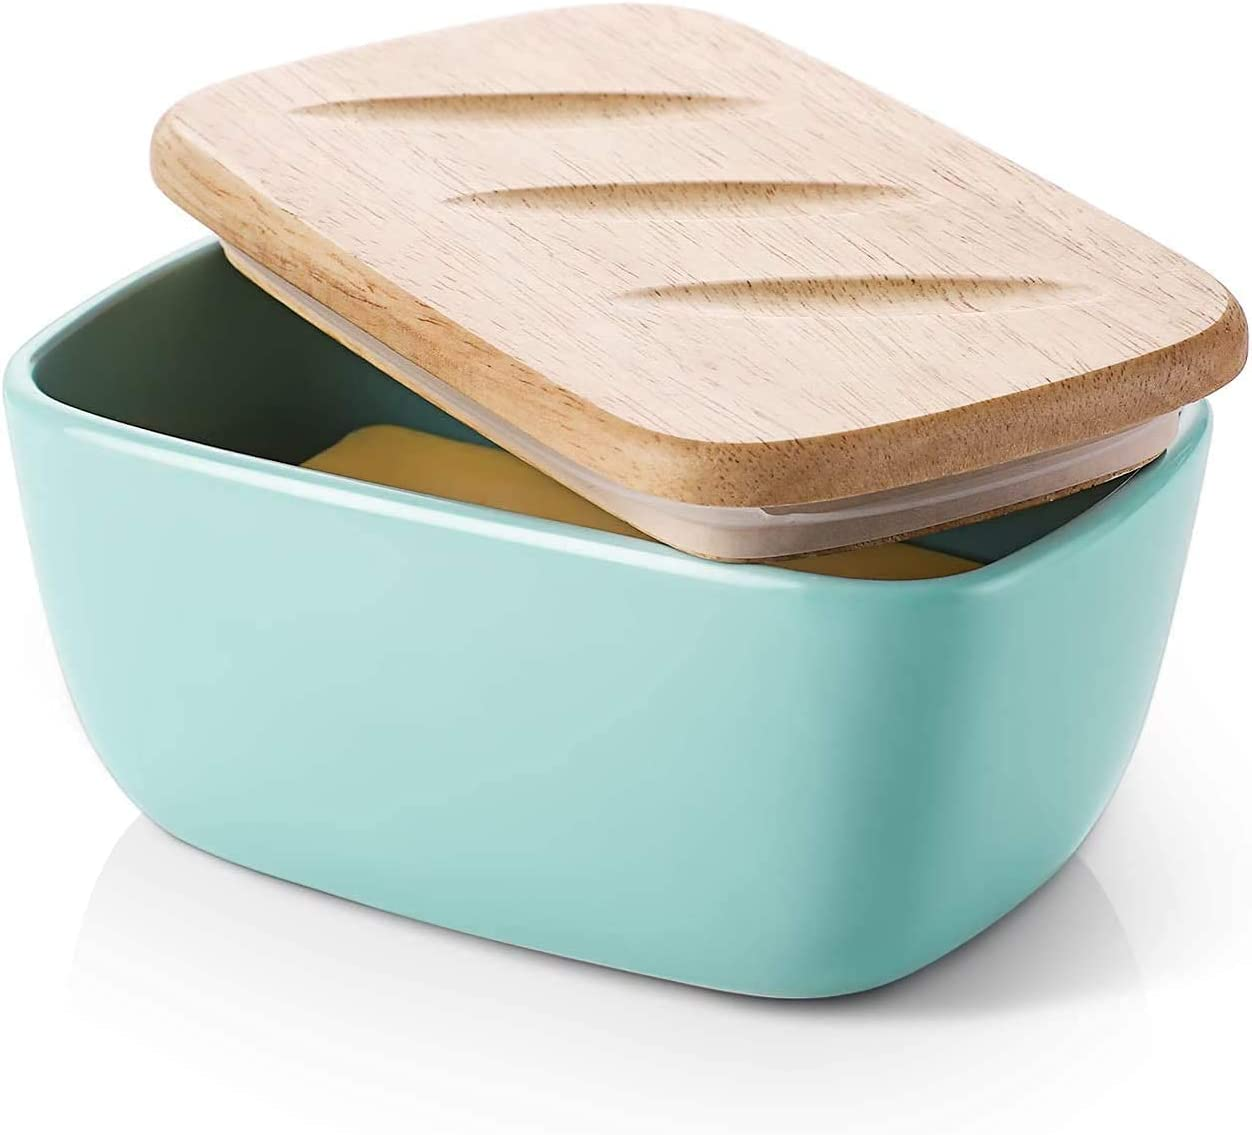 DOWAN Porcelain Butter Dish - Wood shipfree Covered Container with Portland Mall